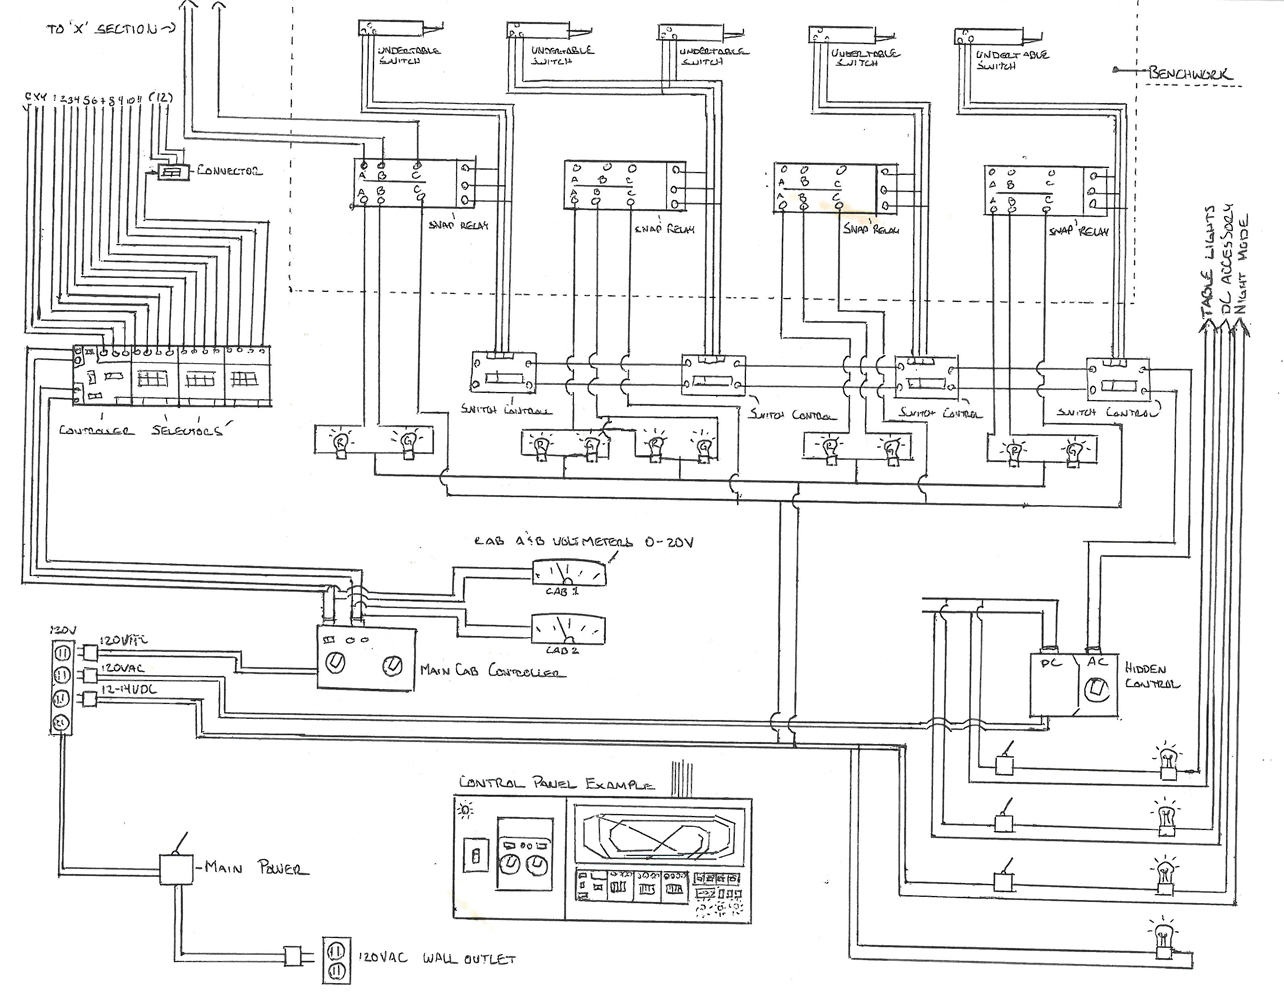 relay and switch machine control wiring diagram for trackside lights